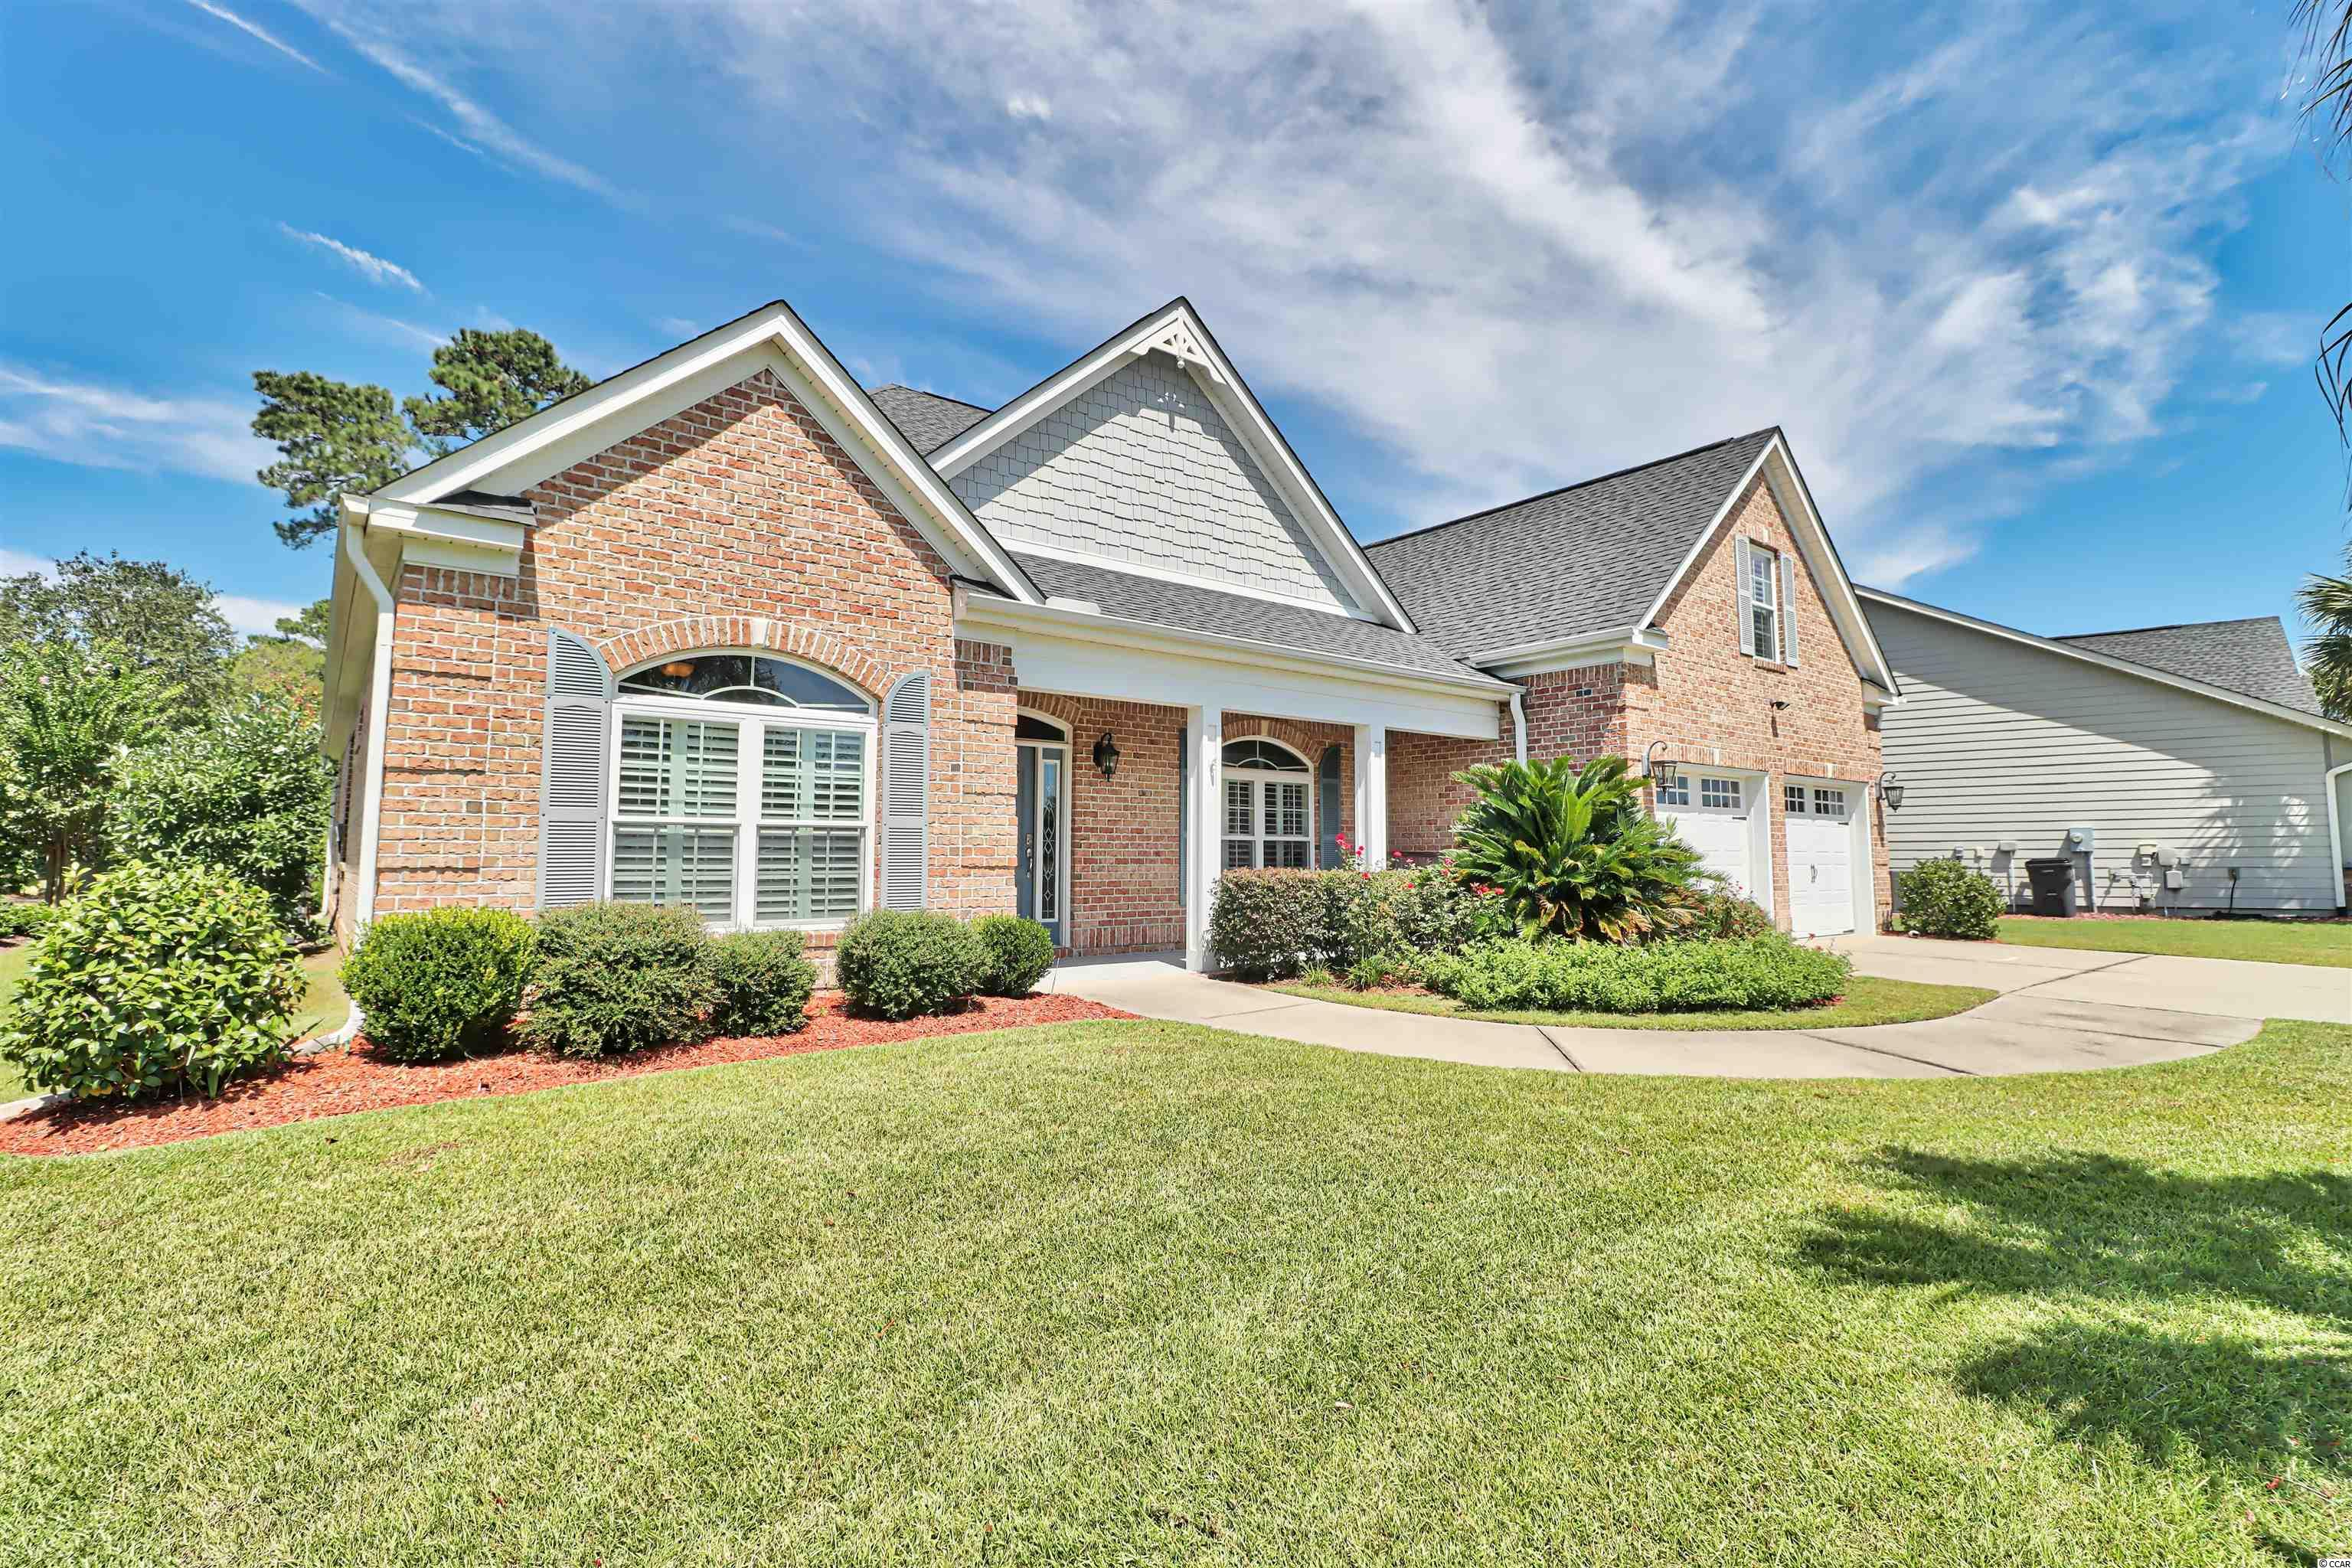 """This beautiful 4 bed/3 1/2 bath custom built home sits on the 16th fairway of the International Club of Myrtle Beach and delivers that """"WOW"""" factor.  Just 2 miles from the ocean, 20 minutes from Myrtle Beach Airport and 90 minutes to downtown Charleston; This custom open concept design allows you to see from the front door to the back porch and on to the golf course unobstructed.  Attention was given to every detail from the Brazilian Cherry Hardwood floors through out to the wainscoting in the formal dining room, foyer, and family room to the crown molding in every room including bathrooms.  The kitchen was designed by a gourmet chef so not only is it stunning to eye but highly functional when preparing meals and entertaining large groups.  Stainless appliances along with 2 large islands and walk-in temperature-controlled Butler's pantry provide a great deal of function and space for storage, cooking and prepping.   As you navigate through the 5,000+ square feet, you'll find large spacious rooms including a Family room, formal dining room, a large Carolina room, 3 main floor bedrooms and an upstairs bonus room / bedroom.  There are double trey ceilings in the dining room, family room and master bedroom.  The expansive screened in back porch has a knotty pine ceiling and 2 1/2-foot knee wall.  Double ceiling fans and pull-down shades make this space enjoyable year-round.  A custom outdoor kitchen complete with a granite counter top,  stainless refrigerator, sink and natural gas grill add to the entertaining possibilities. In addition, a whole house natural gas generator provides continuous power for those unexpected emergencies.  Simply too many extras to list. This is a """"MUST SEE""""!"""